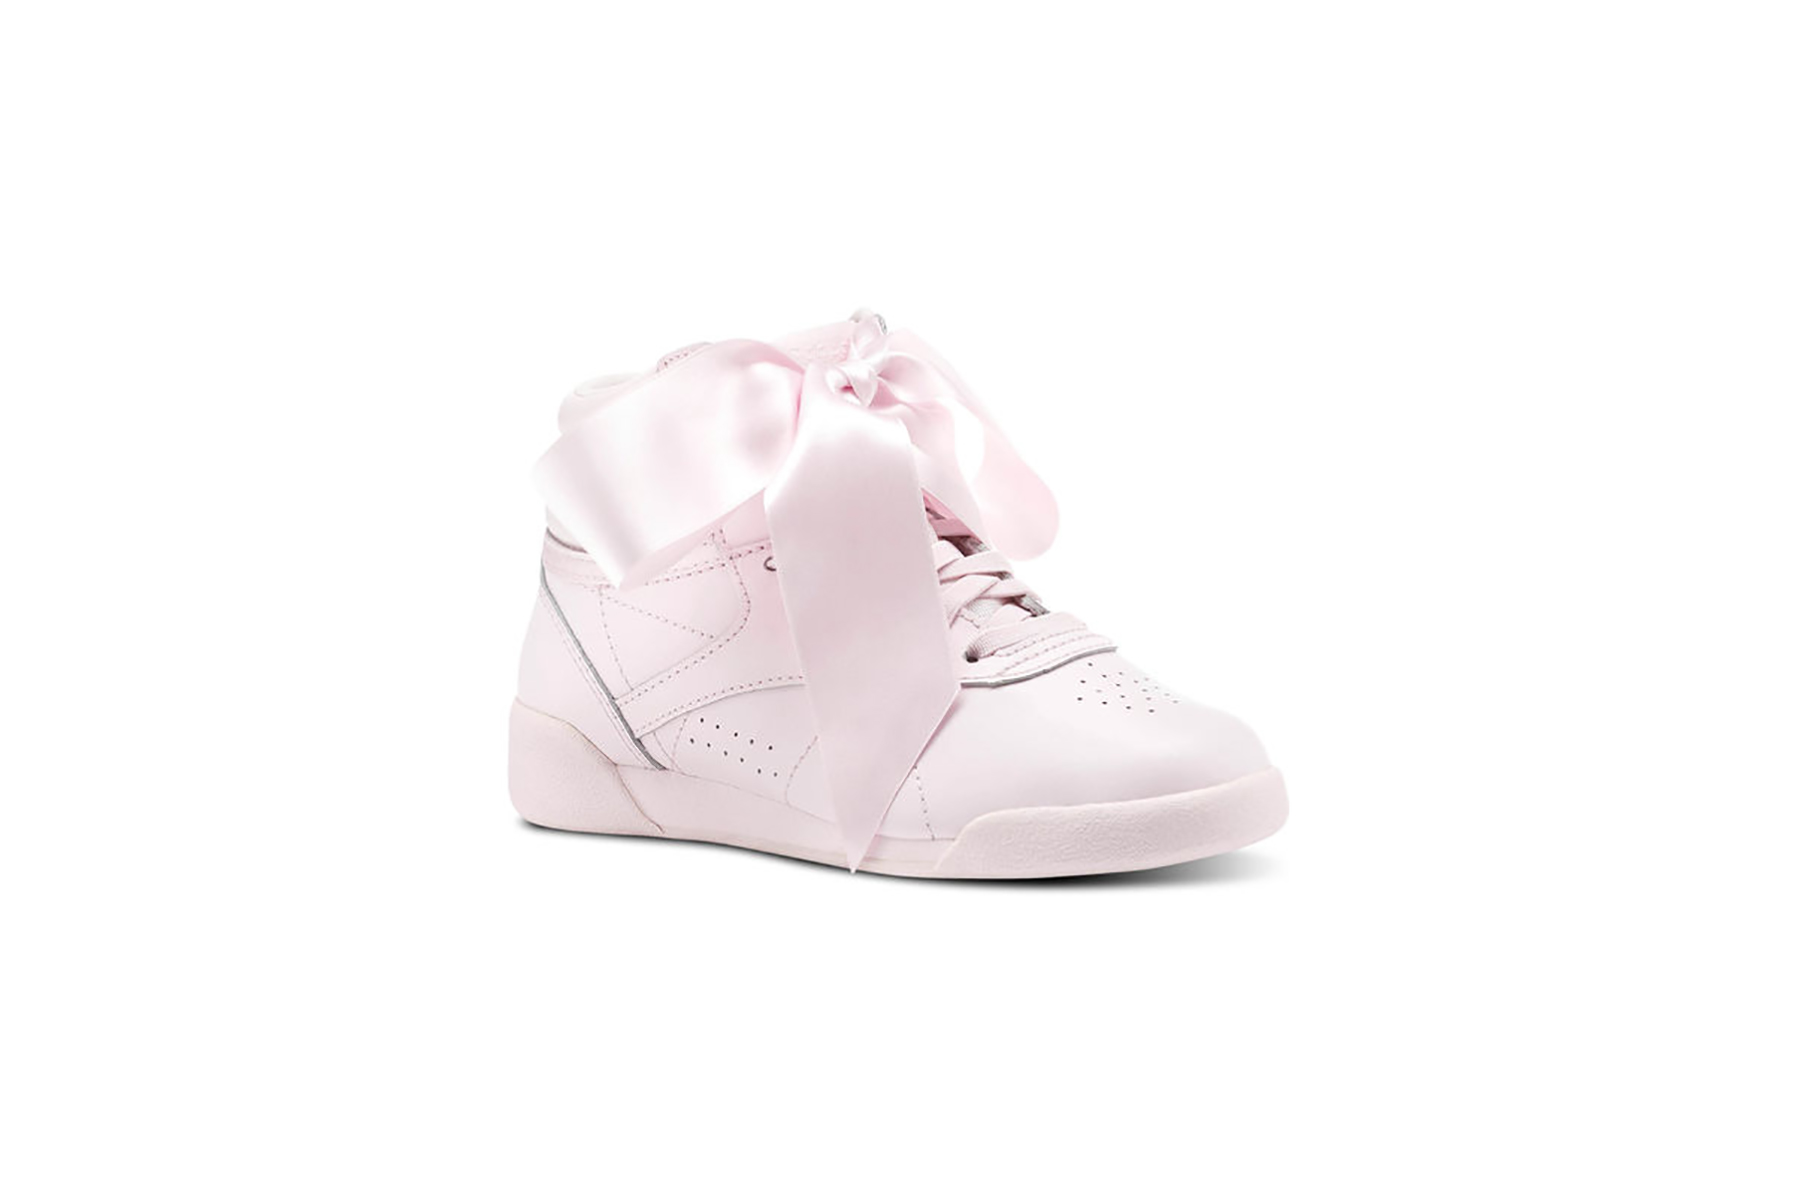 The Cutest Baby Pink Sneakers for Spring